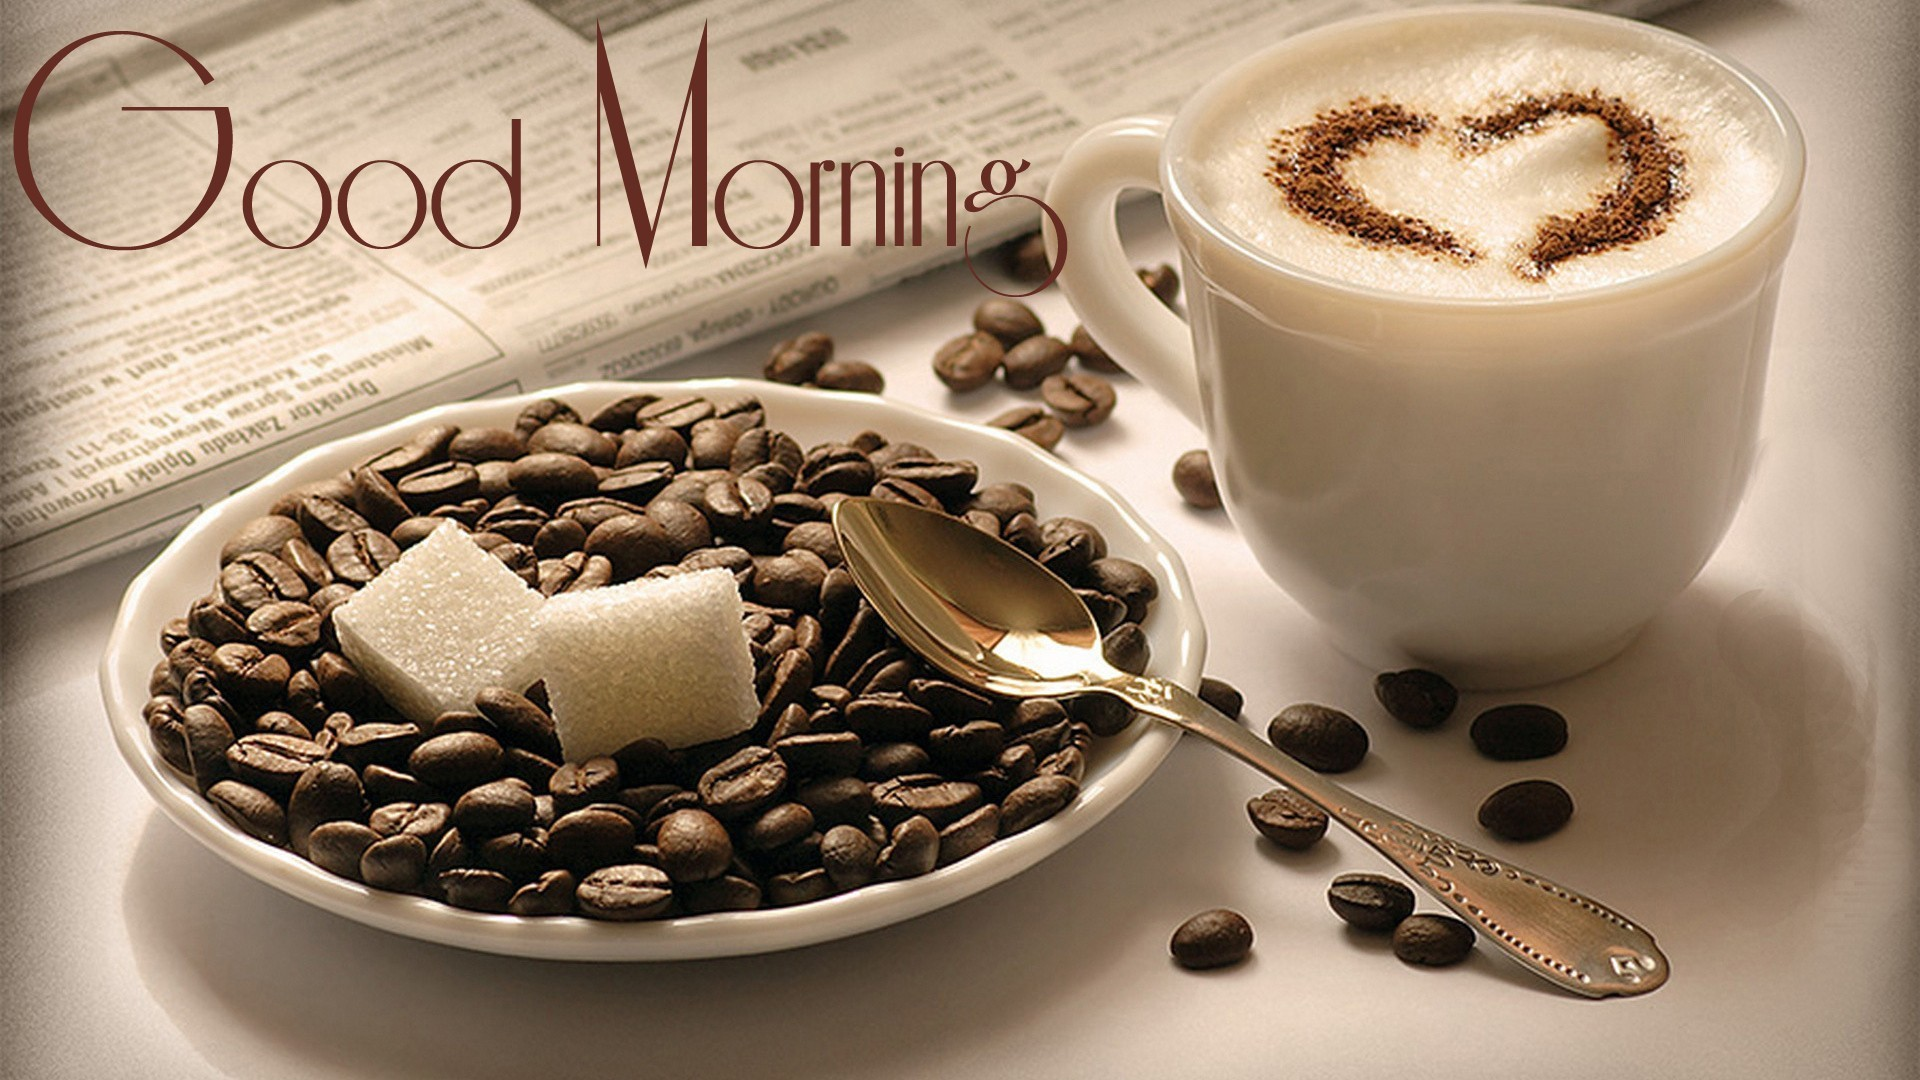 Cute Good Morning Wallpapers Quotes